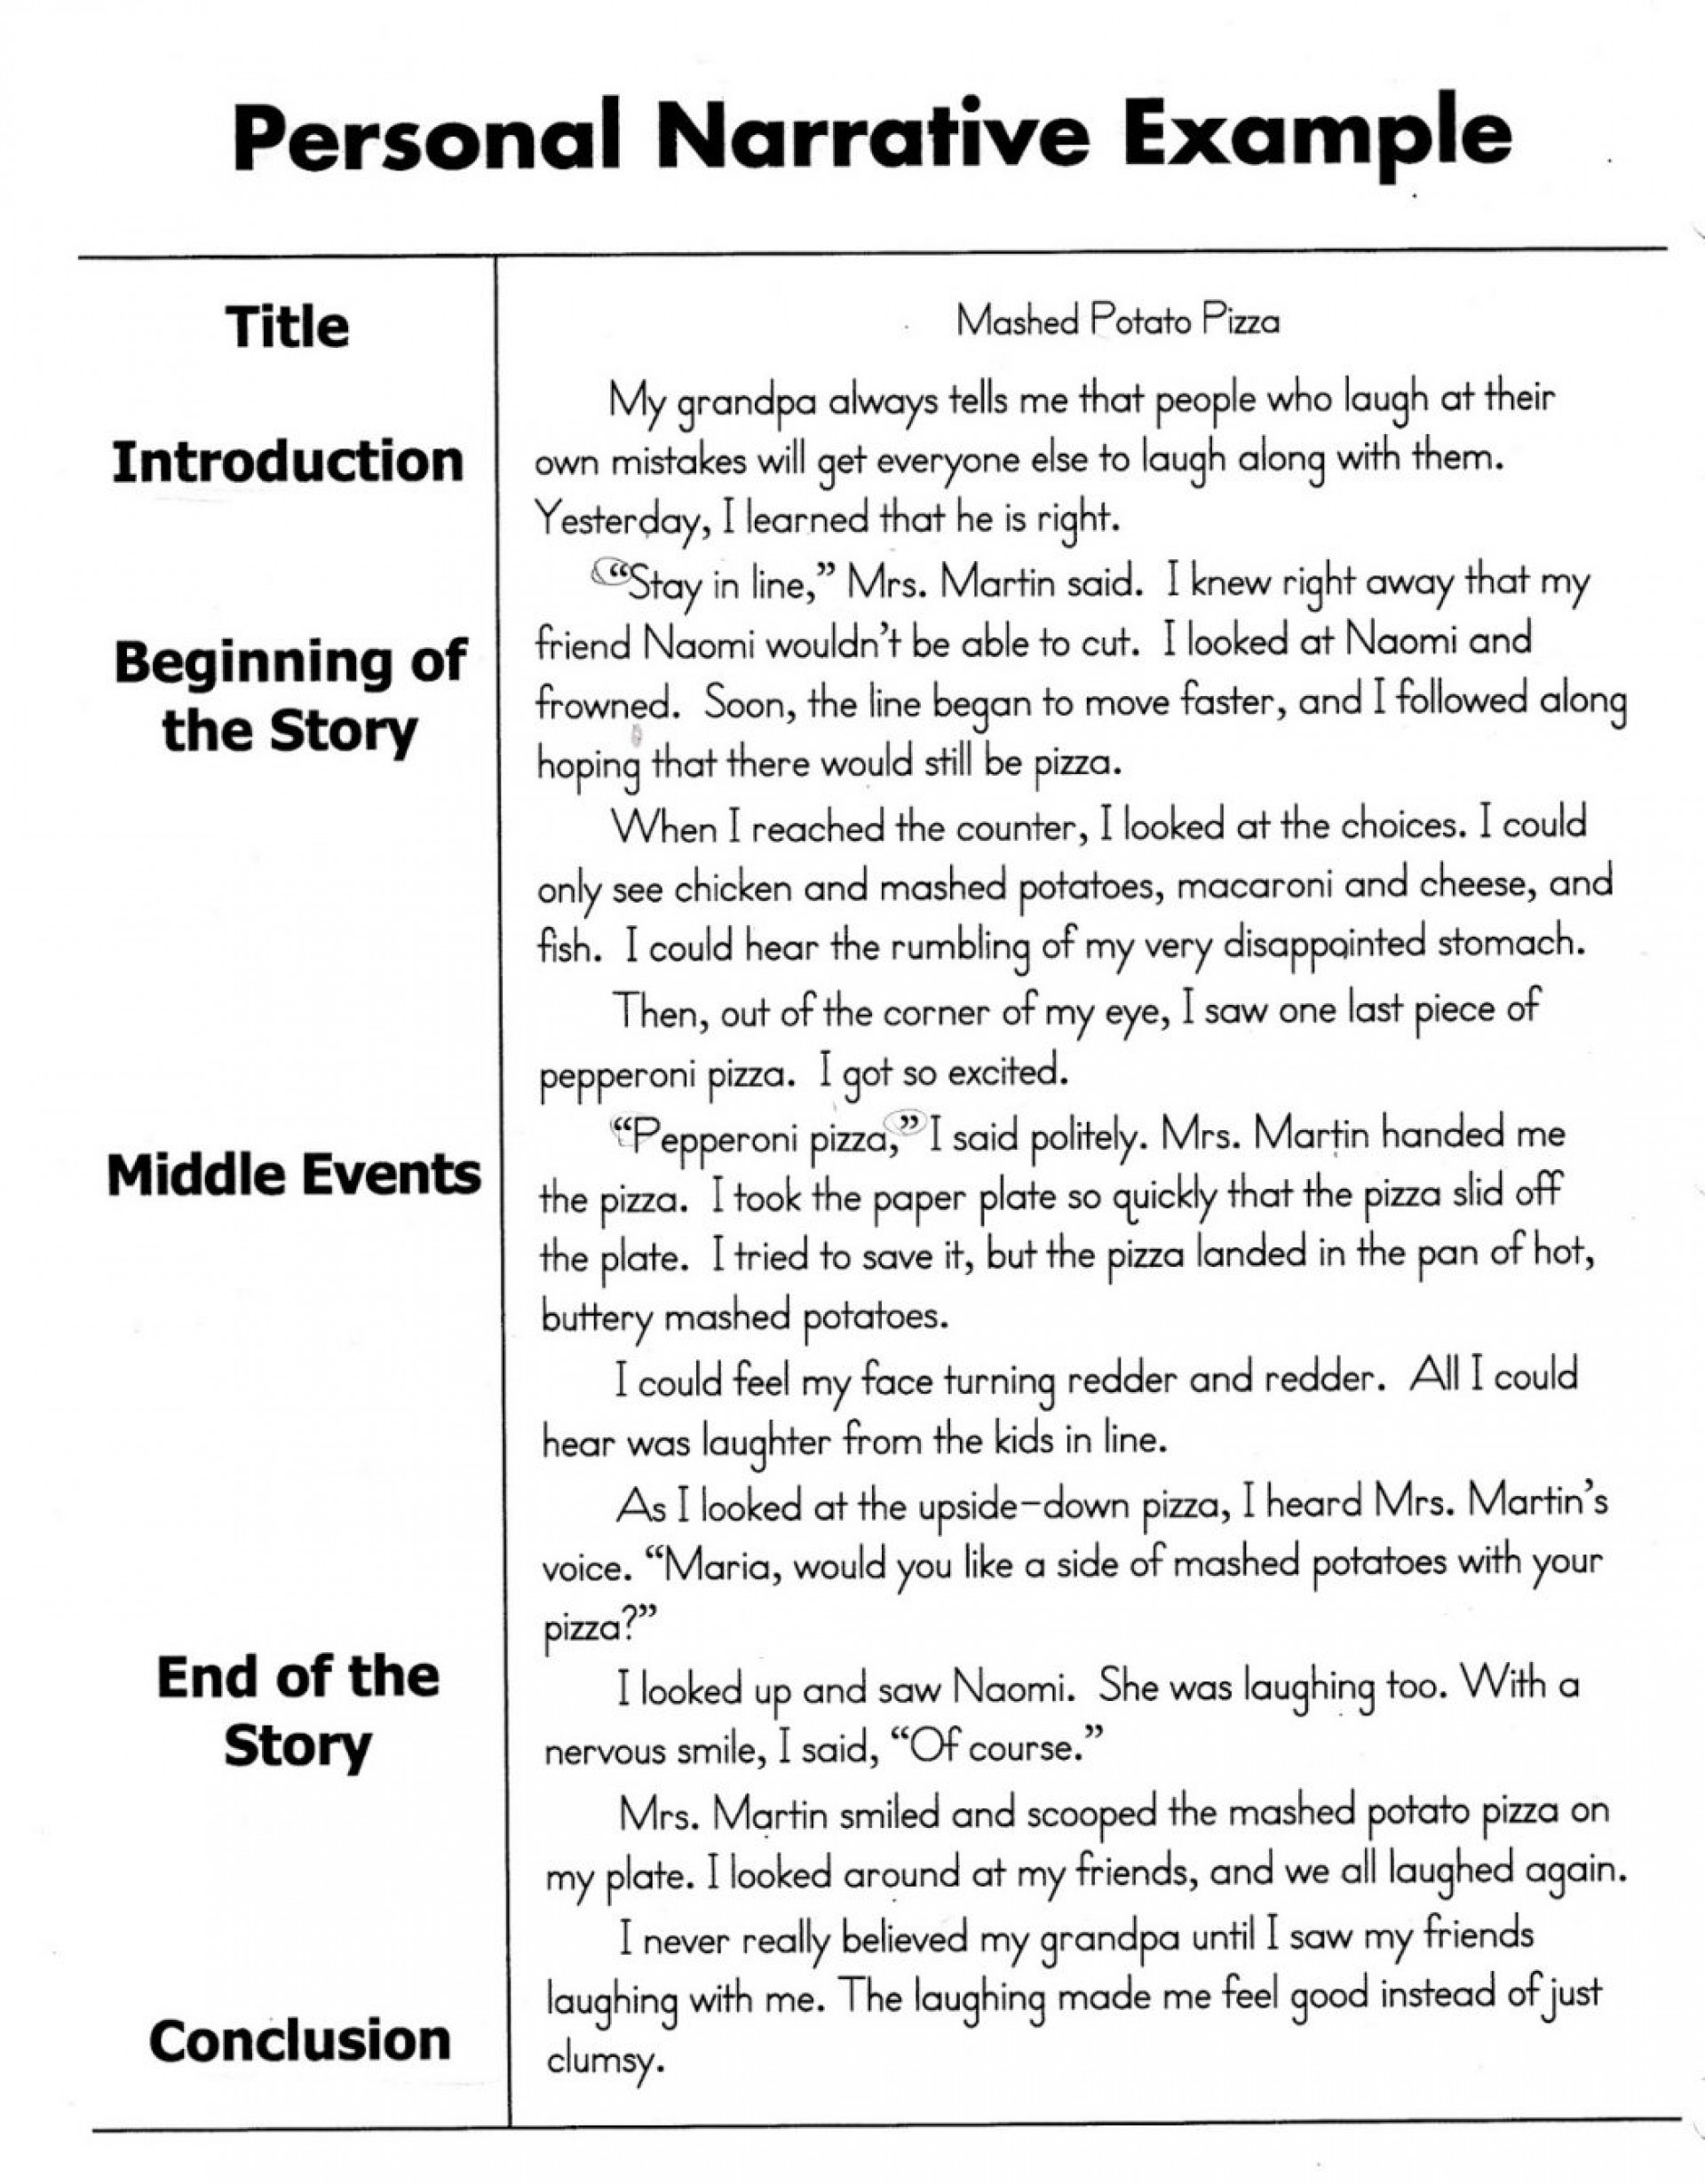 008 Good Narrative Essay Topics Macbeth Topic Sample High School For College Students Personal Prompts 1048x1343 Stirring Descriptive Grade 8 1920